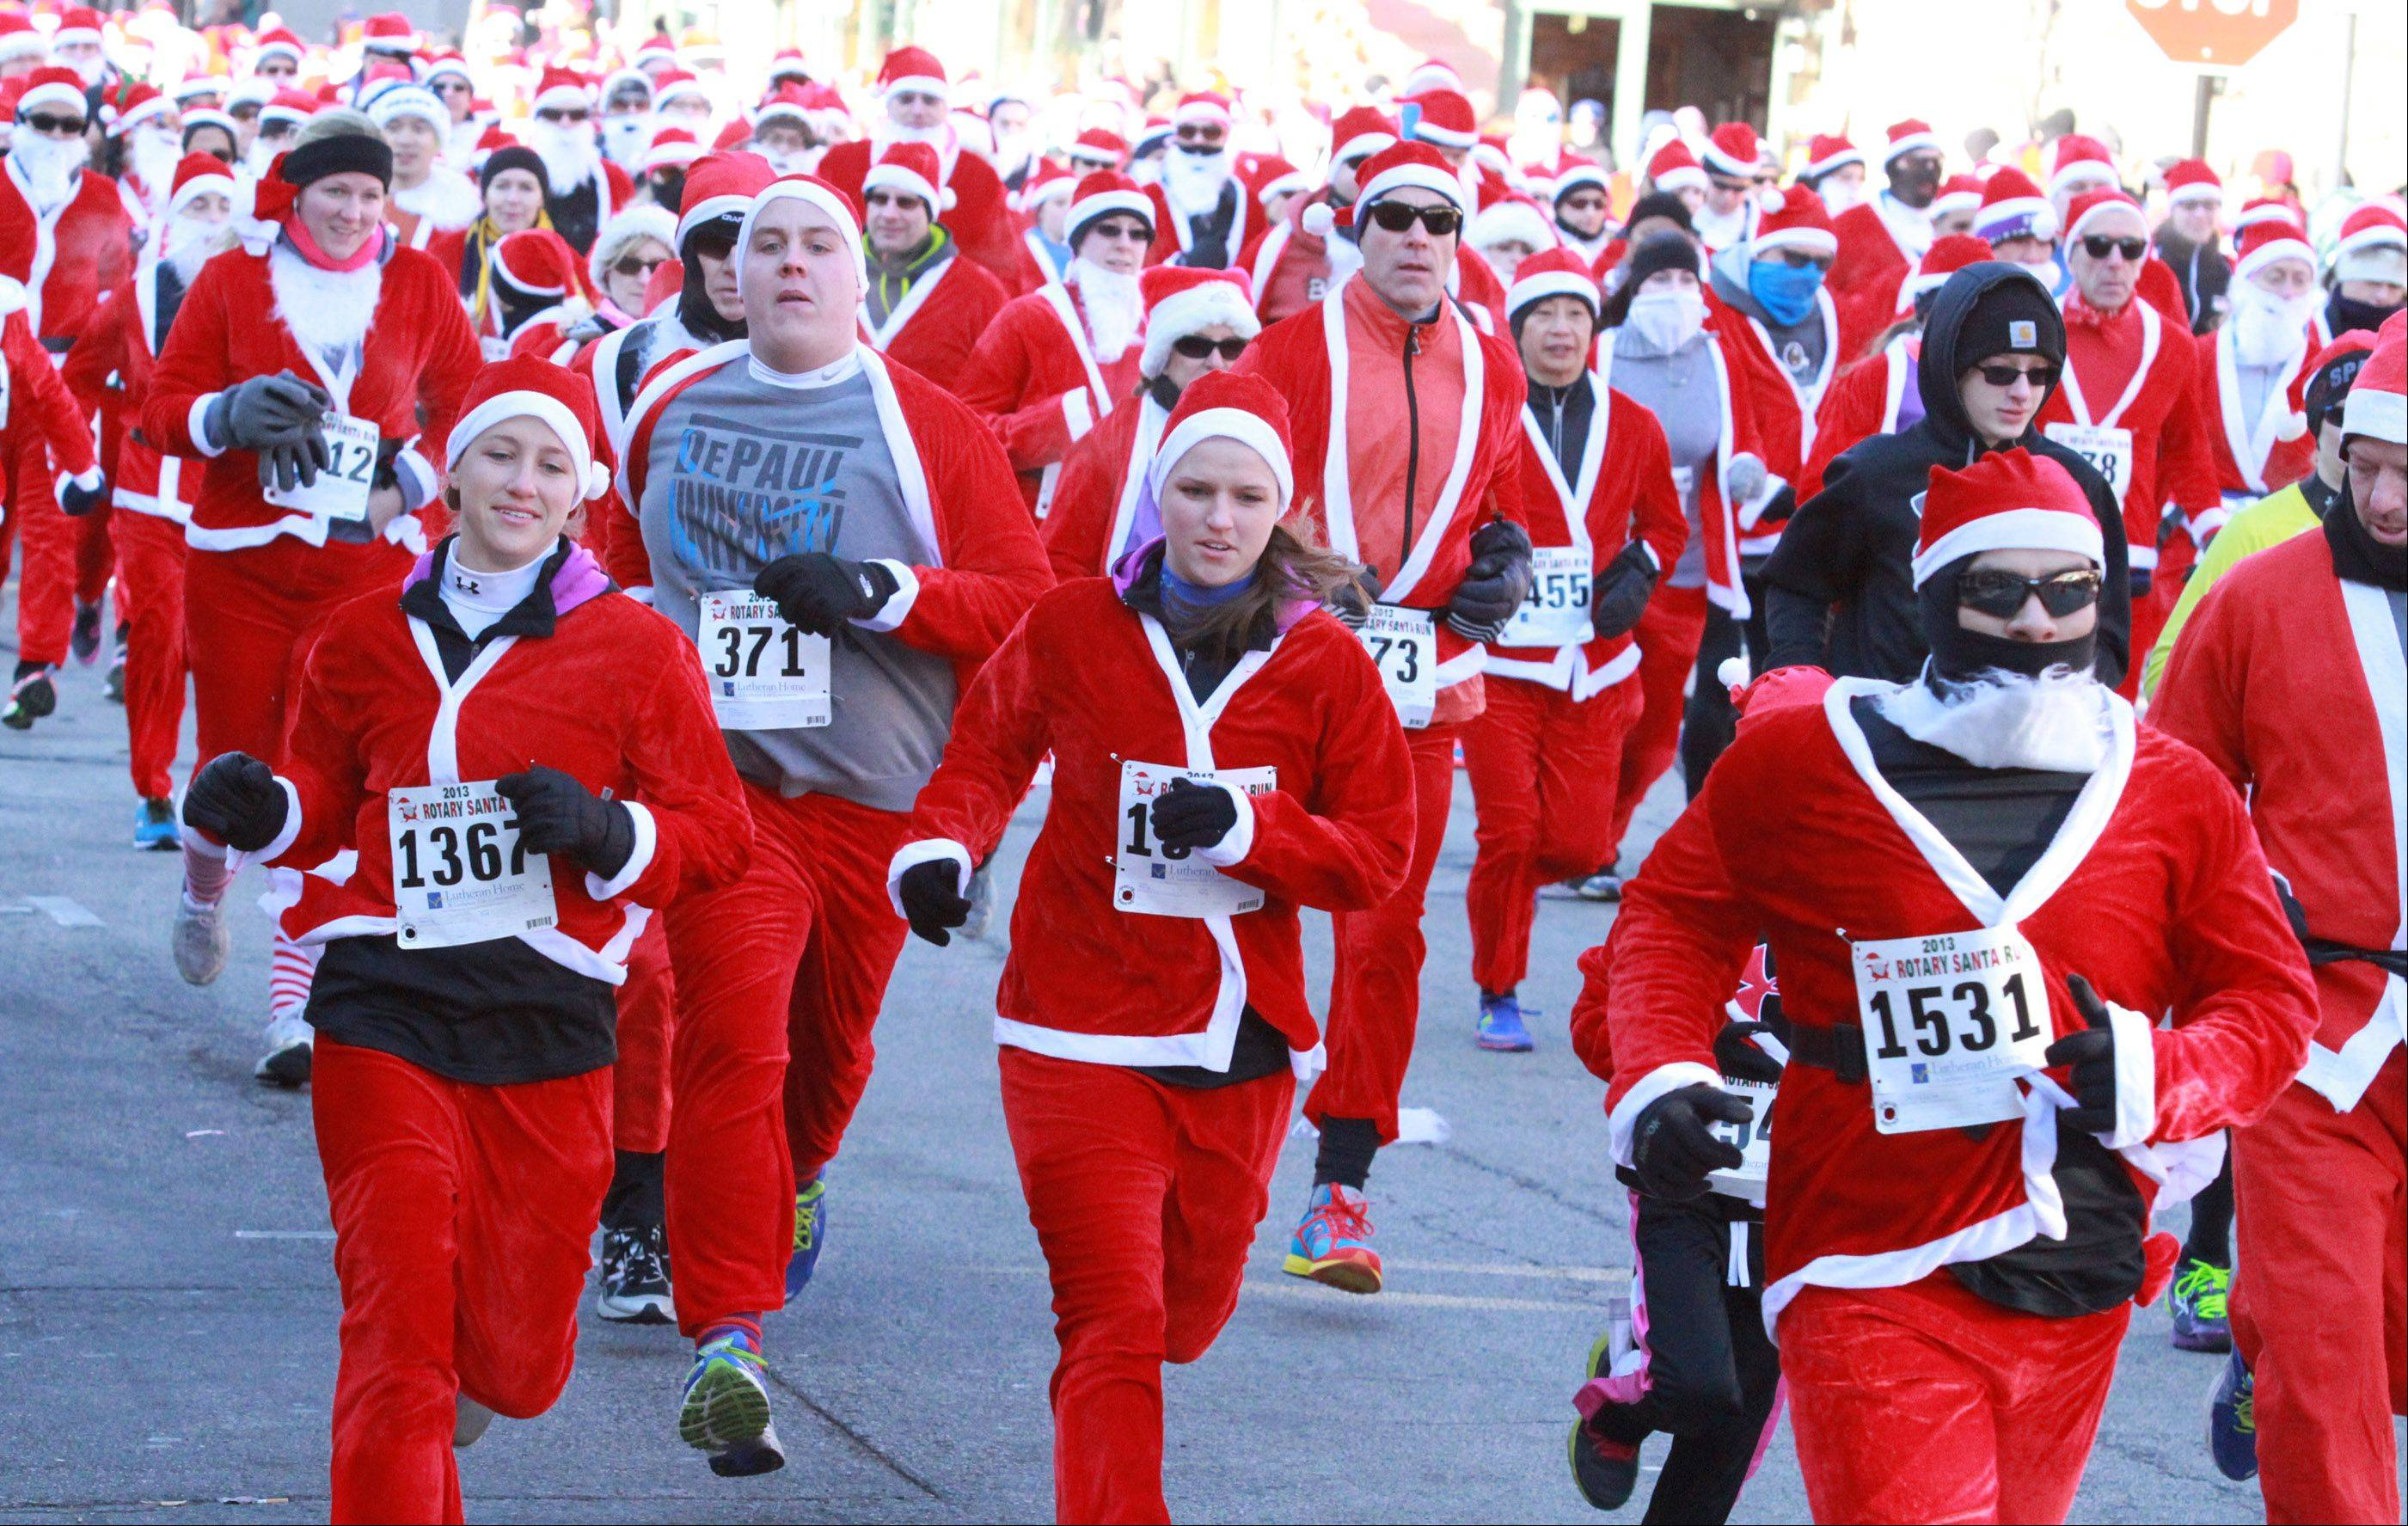 More than 1,600 runners in Santa Claus costumes participated in the Rotary Santa Run on Saturday in Arlington Heights.